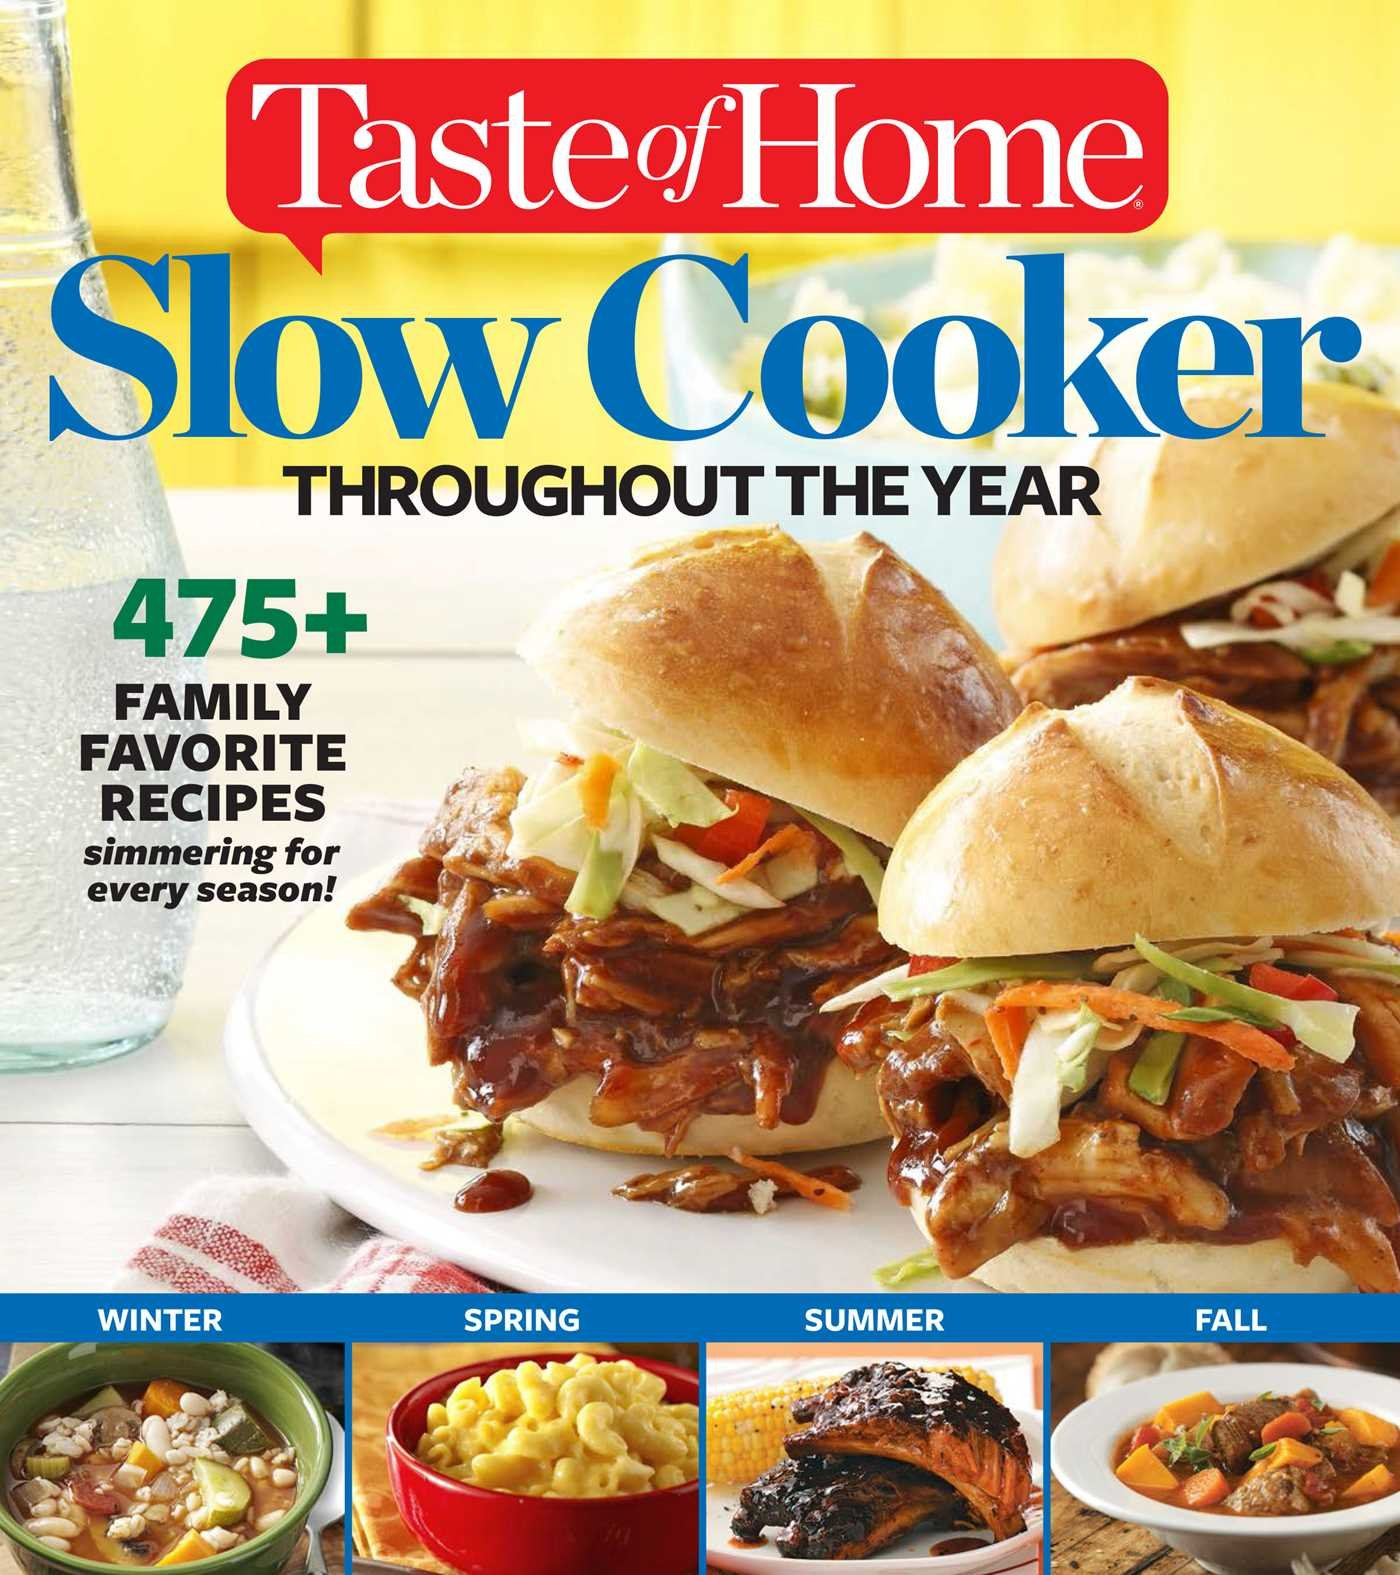 Taste of home slow cooker throughout the year 495 family favorite taste of home slow cooker throughout the year 495 family favorite recipes editors at taste of home 9781617653452 amazon books forumfinder Image collections